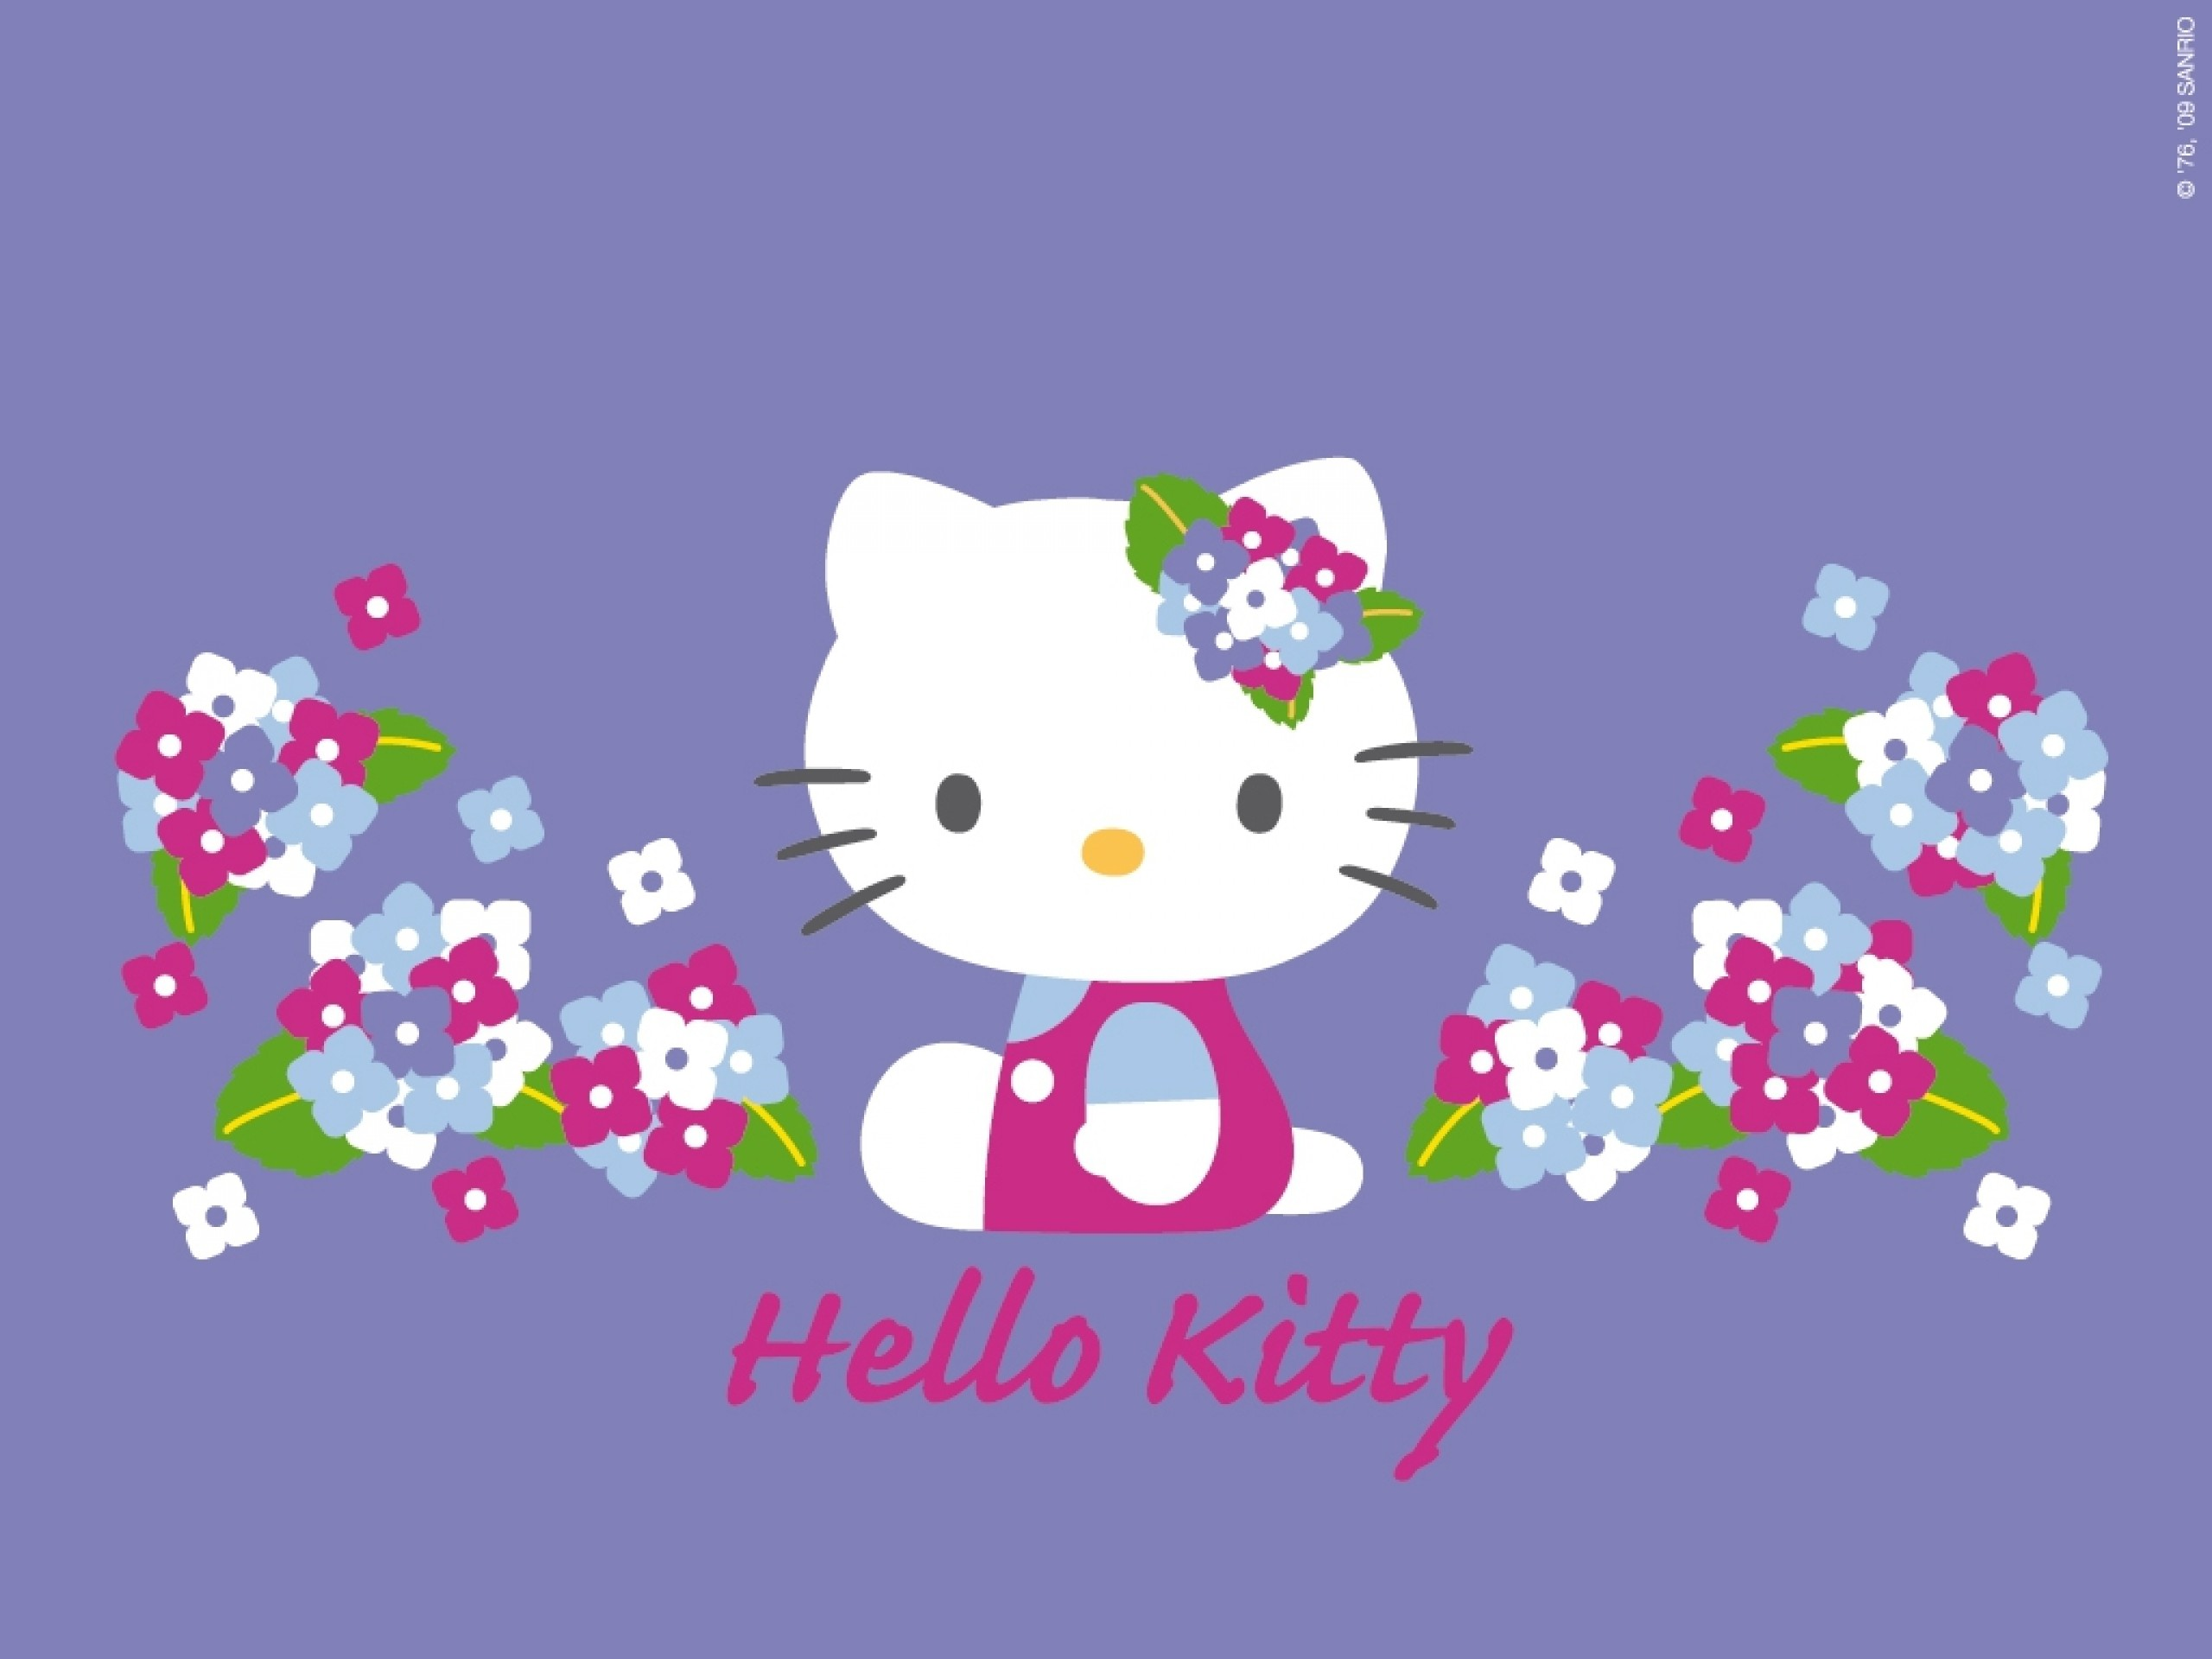 Hello Kitty wallpaper ·â' Download free stunning wallpapers for